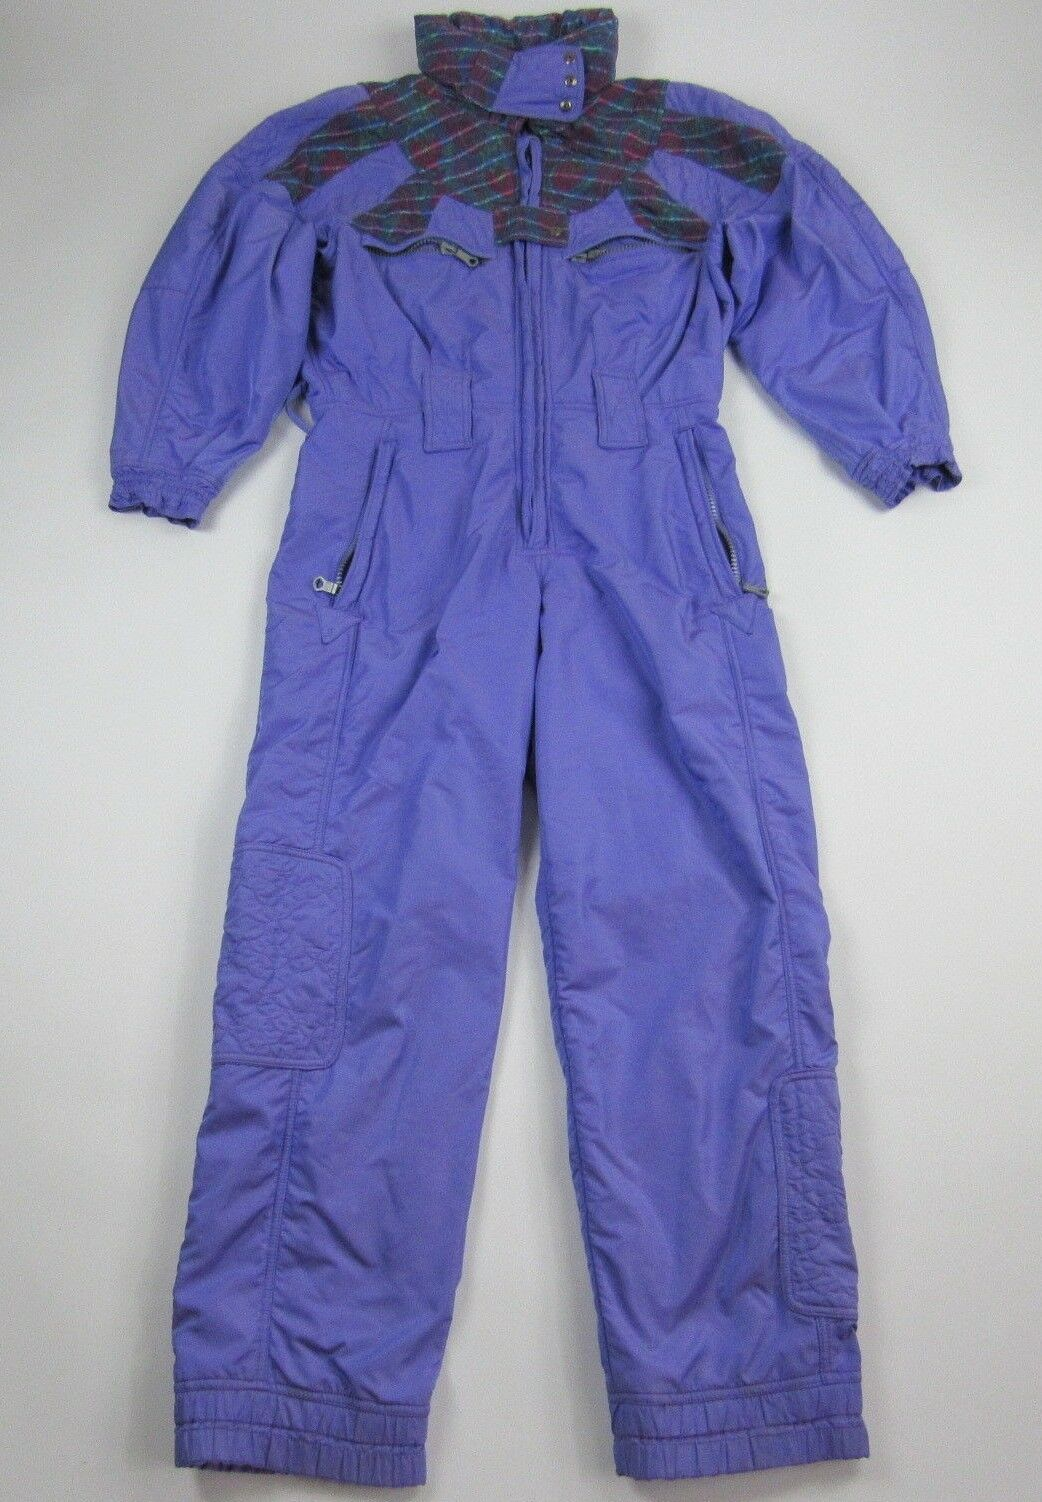 Vtg  80s 90s Purple Chervo One piece Ski Suit Snow Bib Snowsuit Euro 46   selling well all over the world